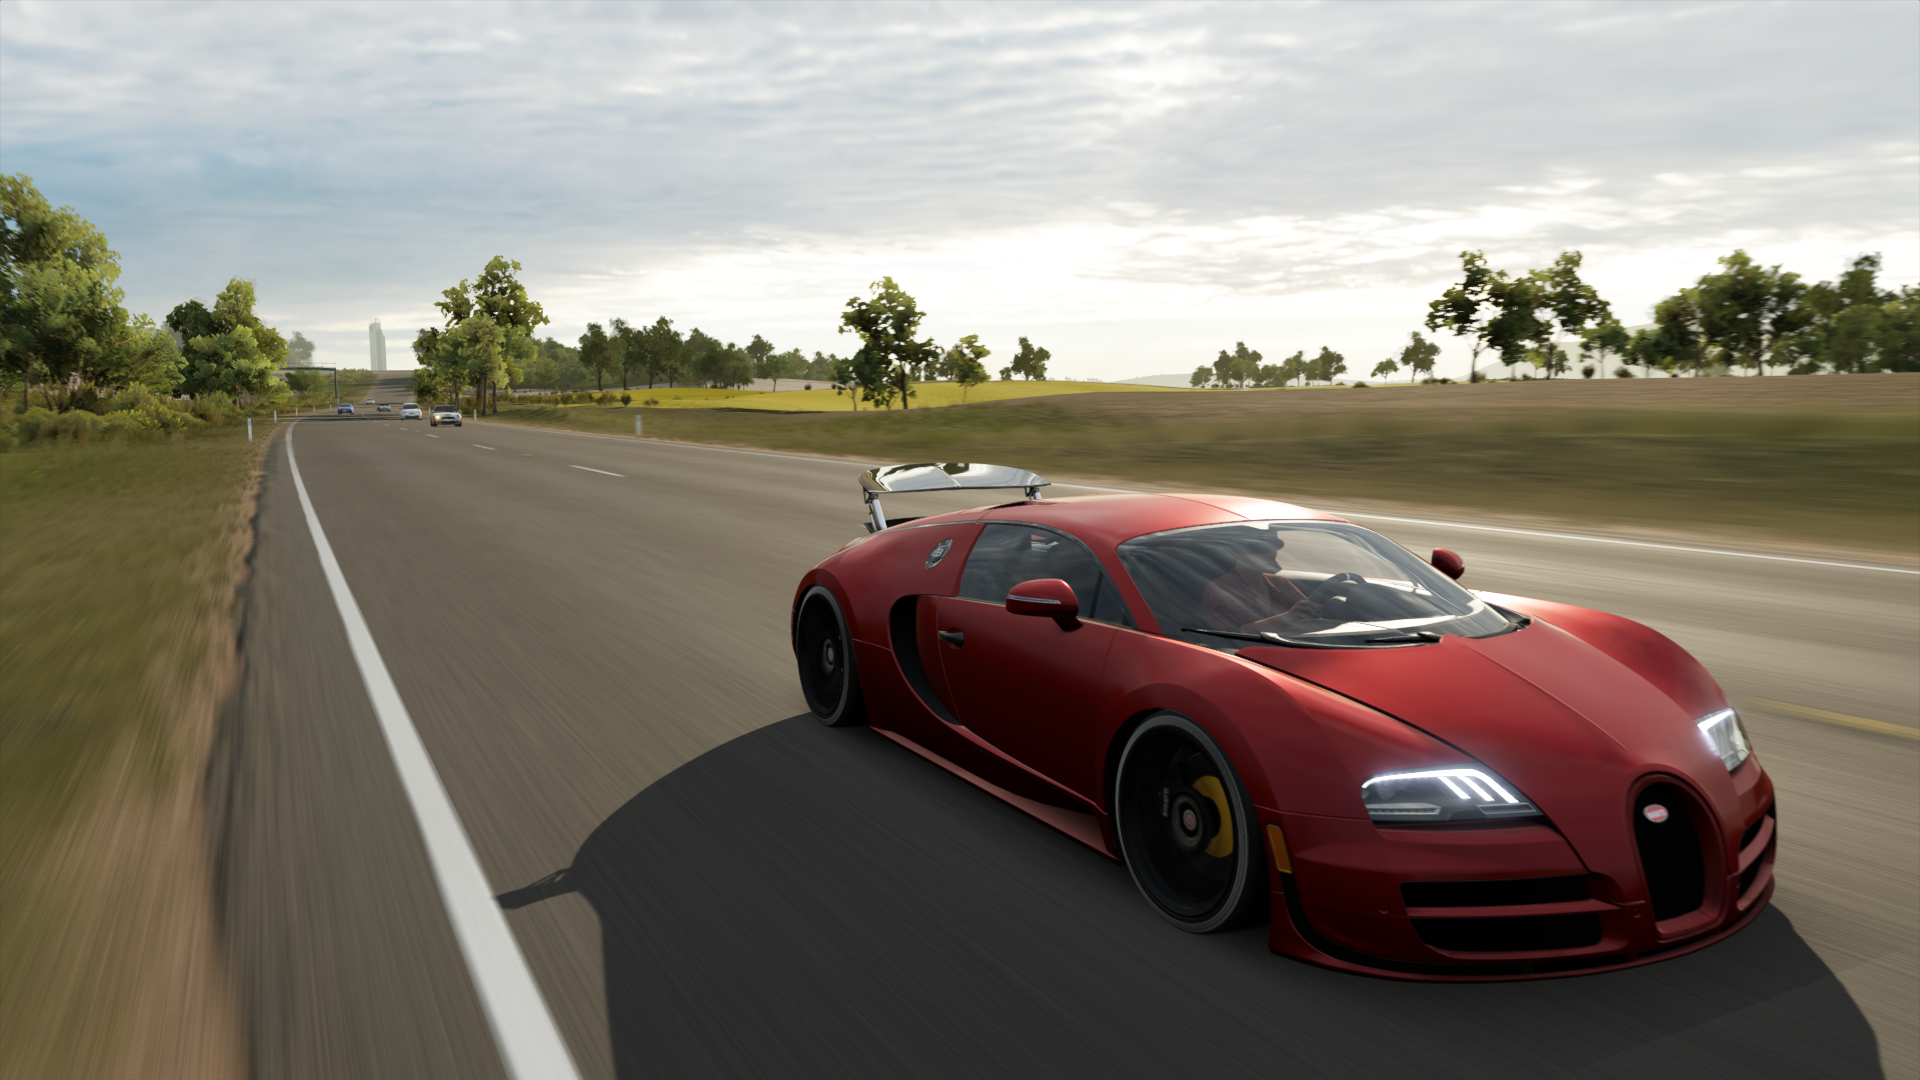 forza horizon 3 wallpapers pictures images. Black Bedroom Furniture Sets. Home Design Ideas